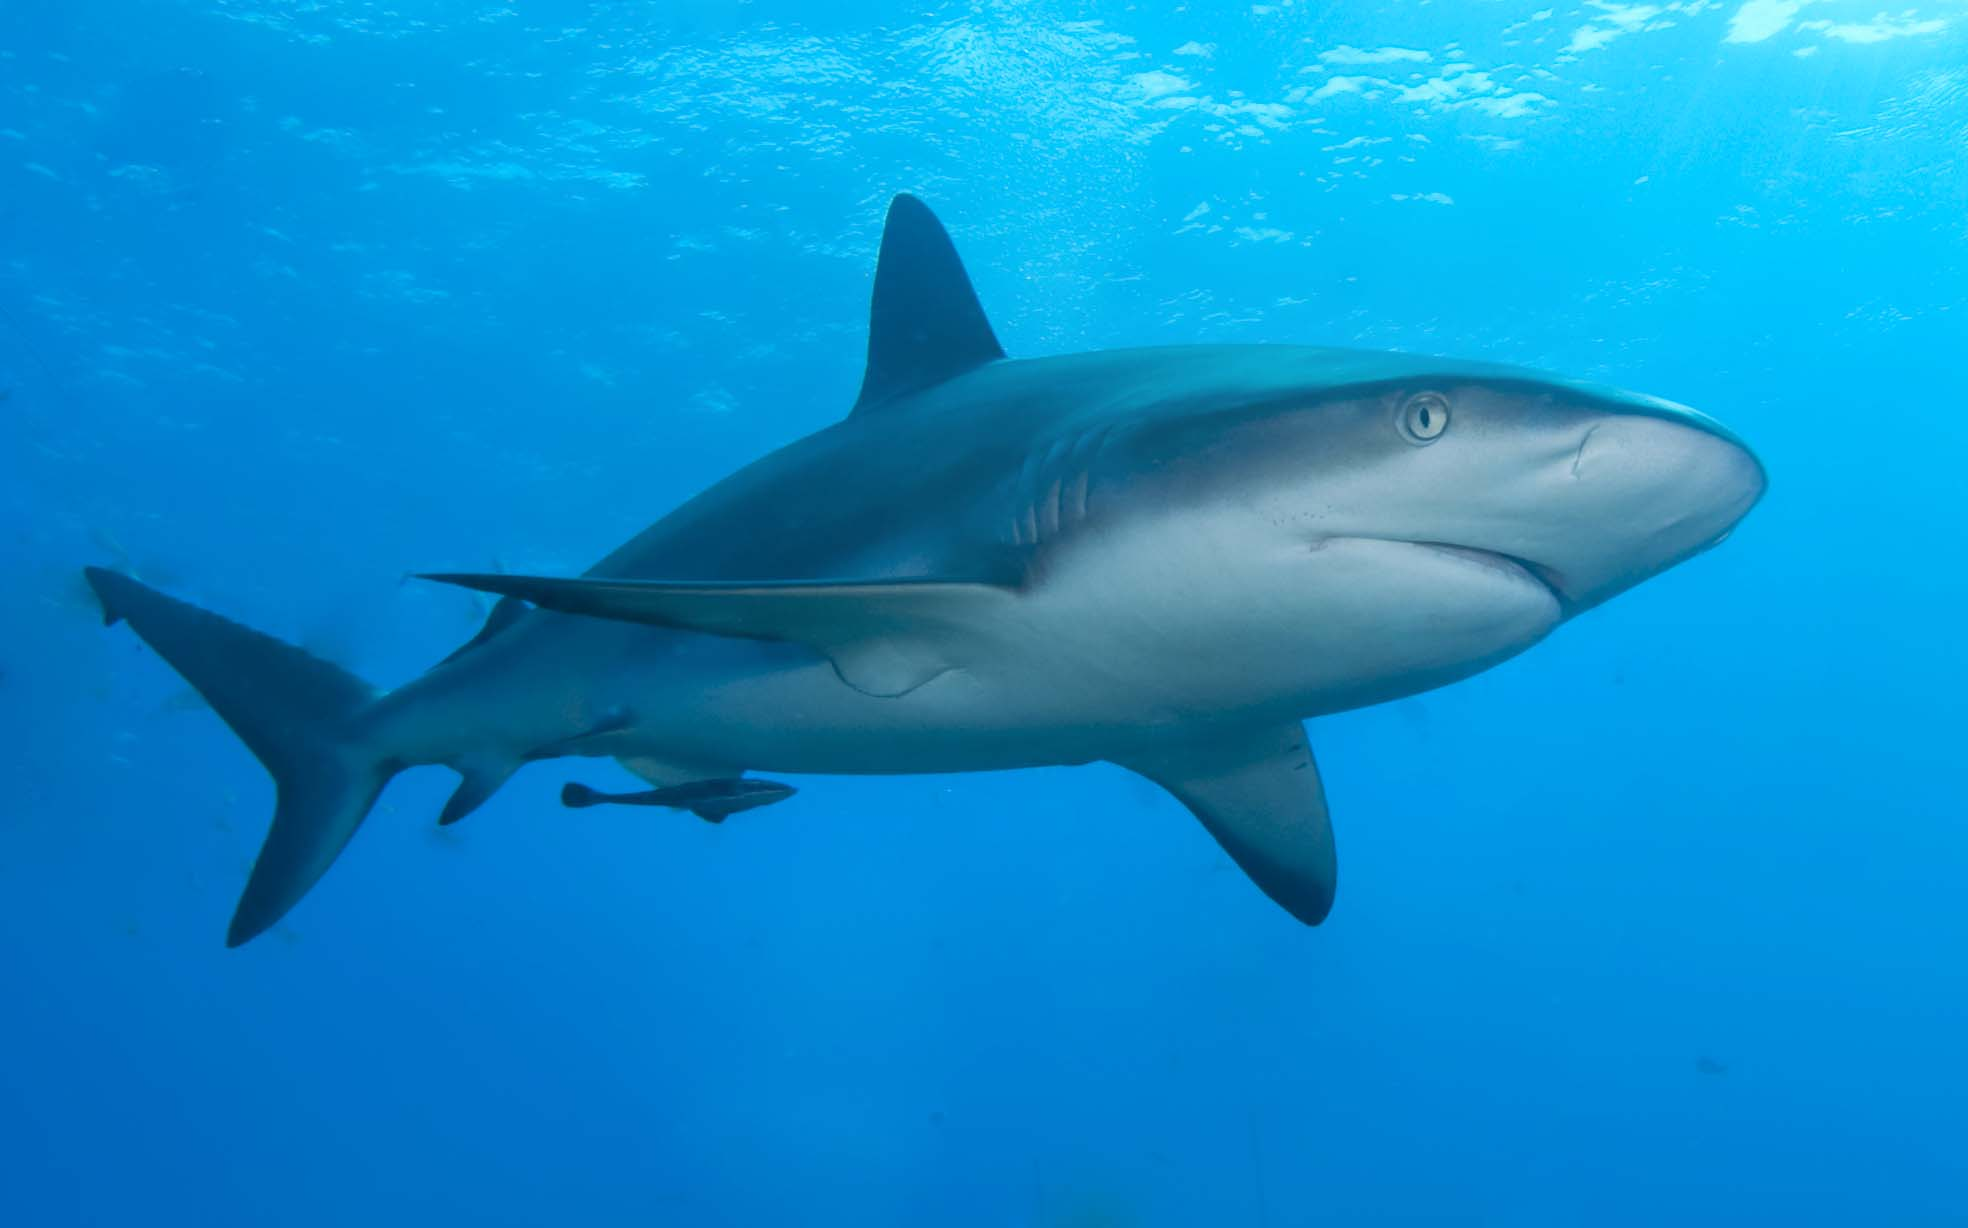 File:Caribbean reef shark.jpg - Wikimedia Commons